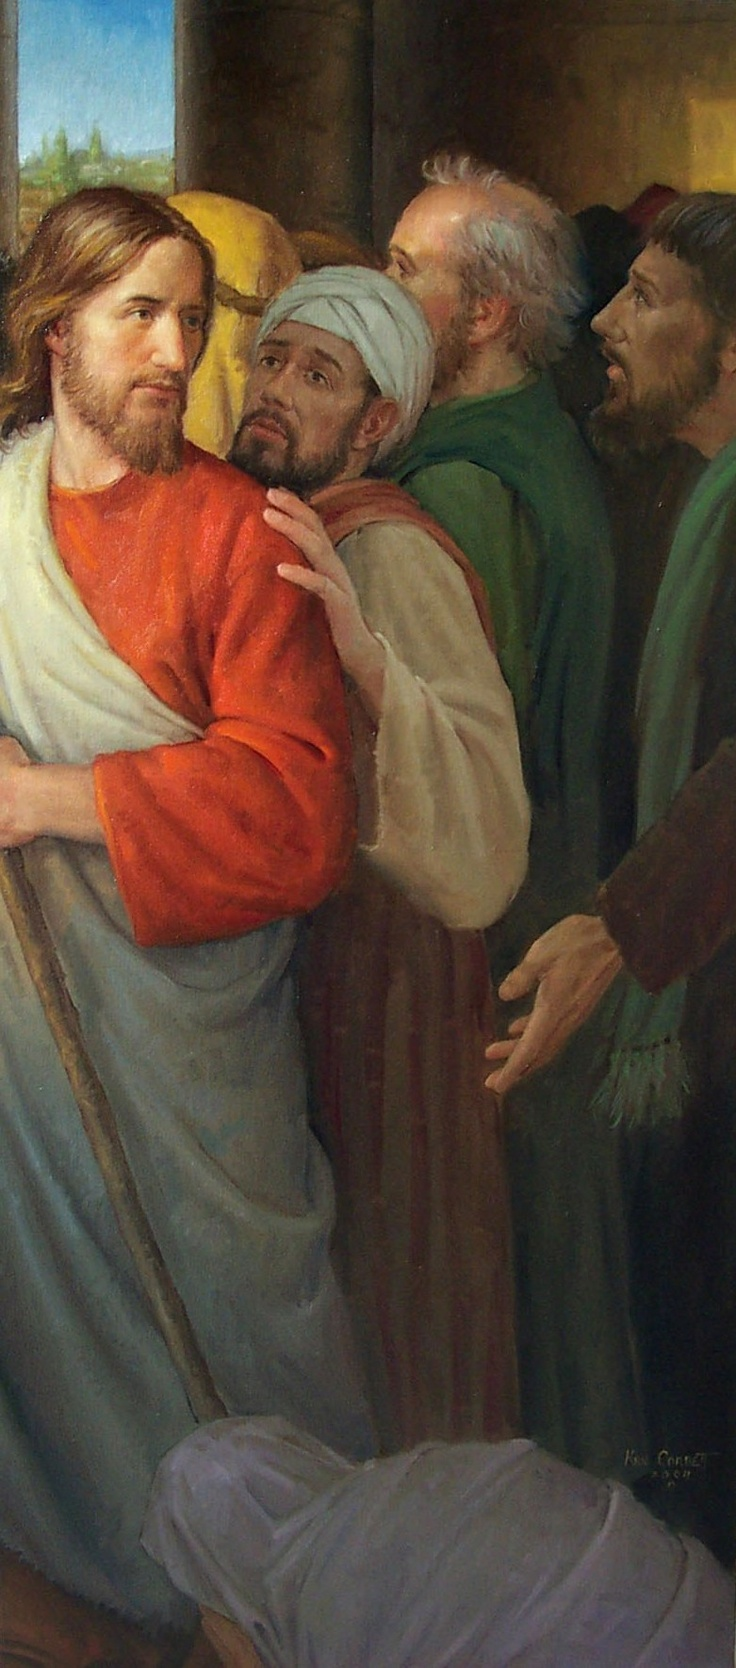 """""""Who touched me?"""" (see Luke 8:43-48; http://lds.org/scriptures/nt/luke/8.43-48#42) One of many inspiring examples in the scriptures of one having great faith in the Lord. May each of us too develop such faith in the Savior. http://facebook.com/173301249409767"""